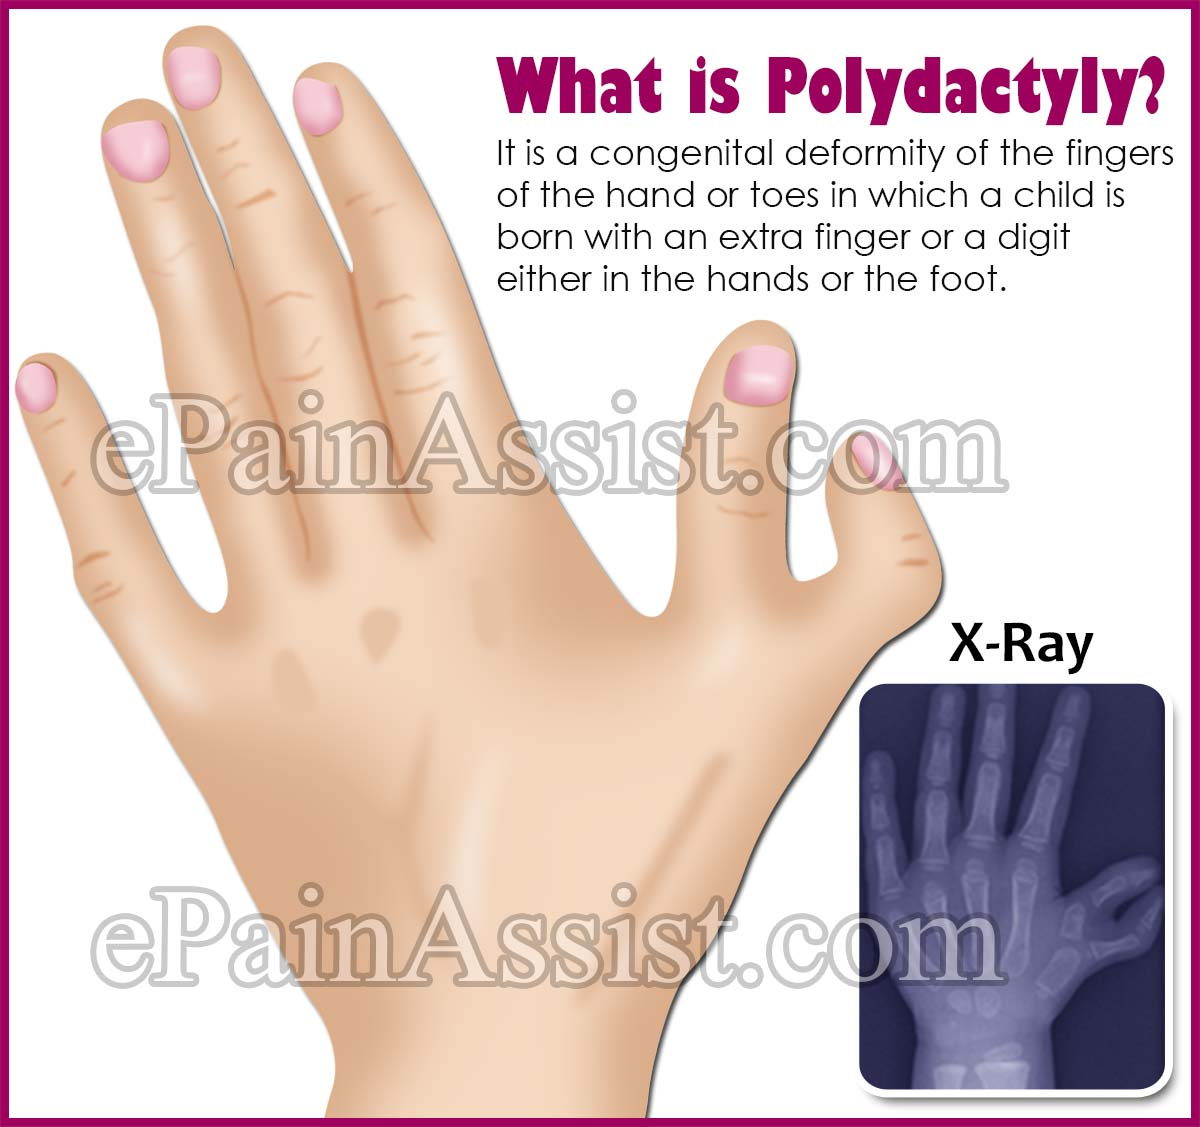 What is Polydactyly?